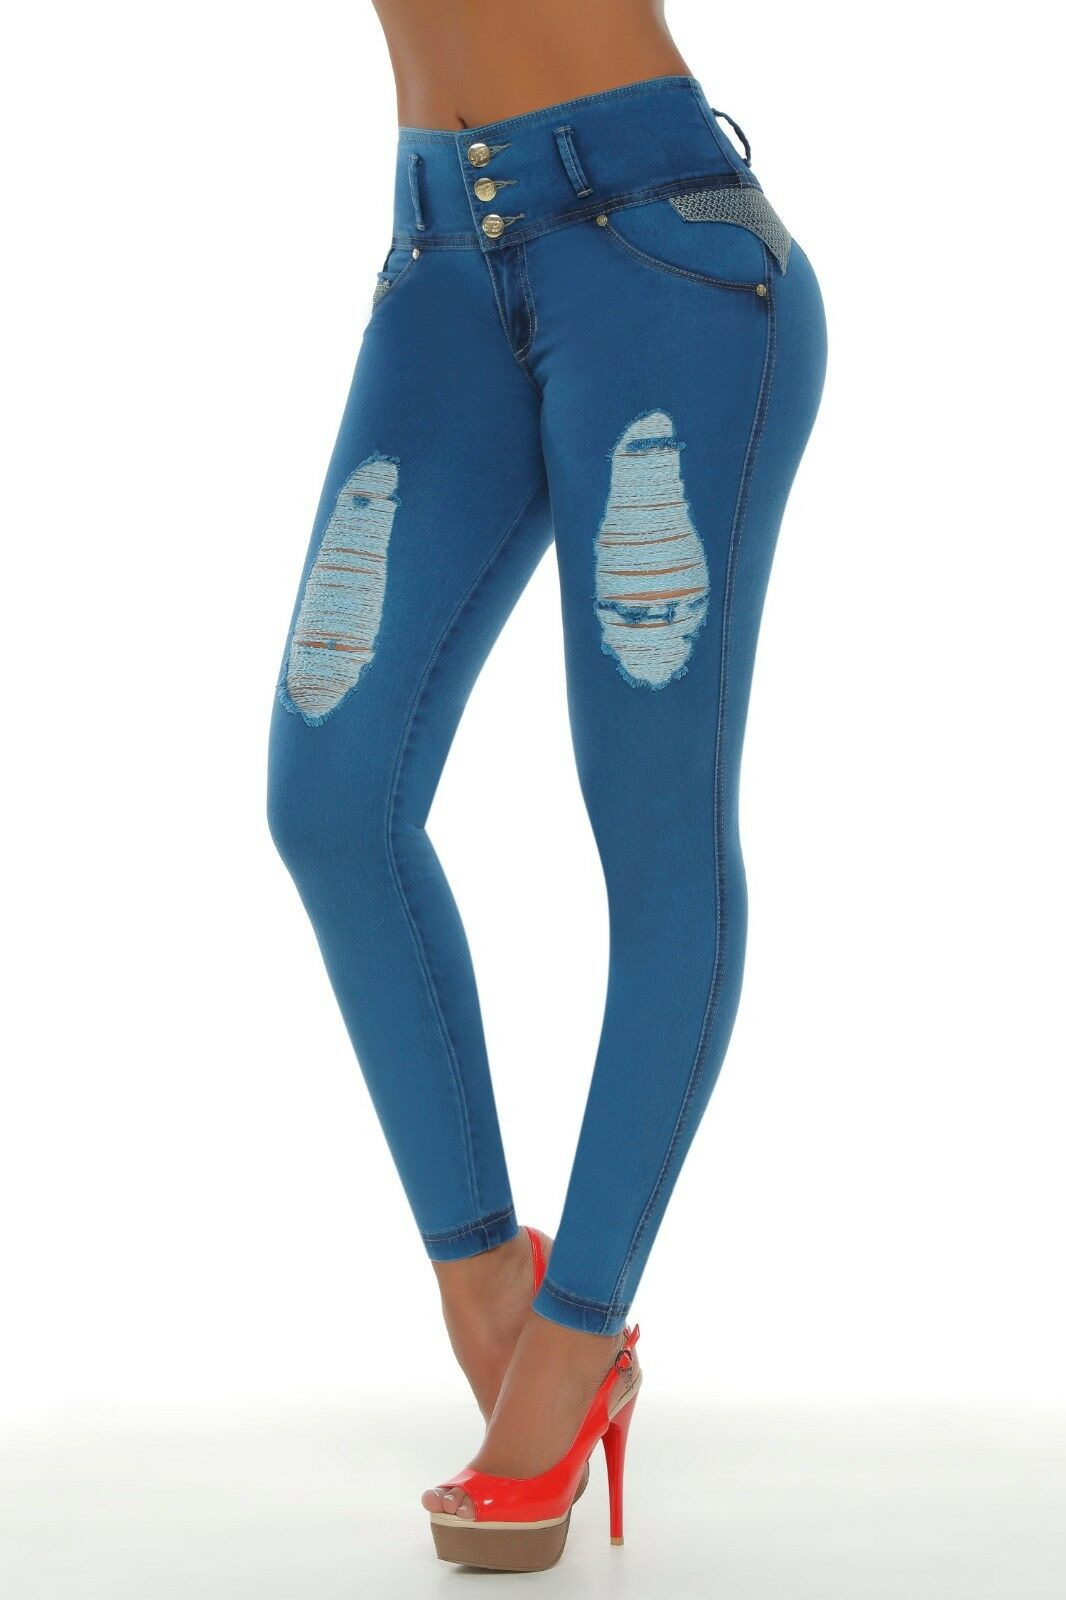 Jeans colombianos butt lifter fajas colombianas jeans levanta cola pompi 1225